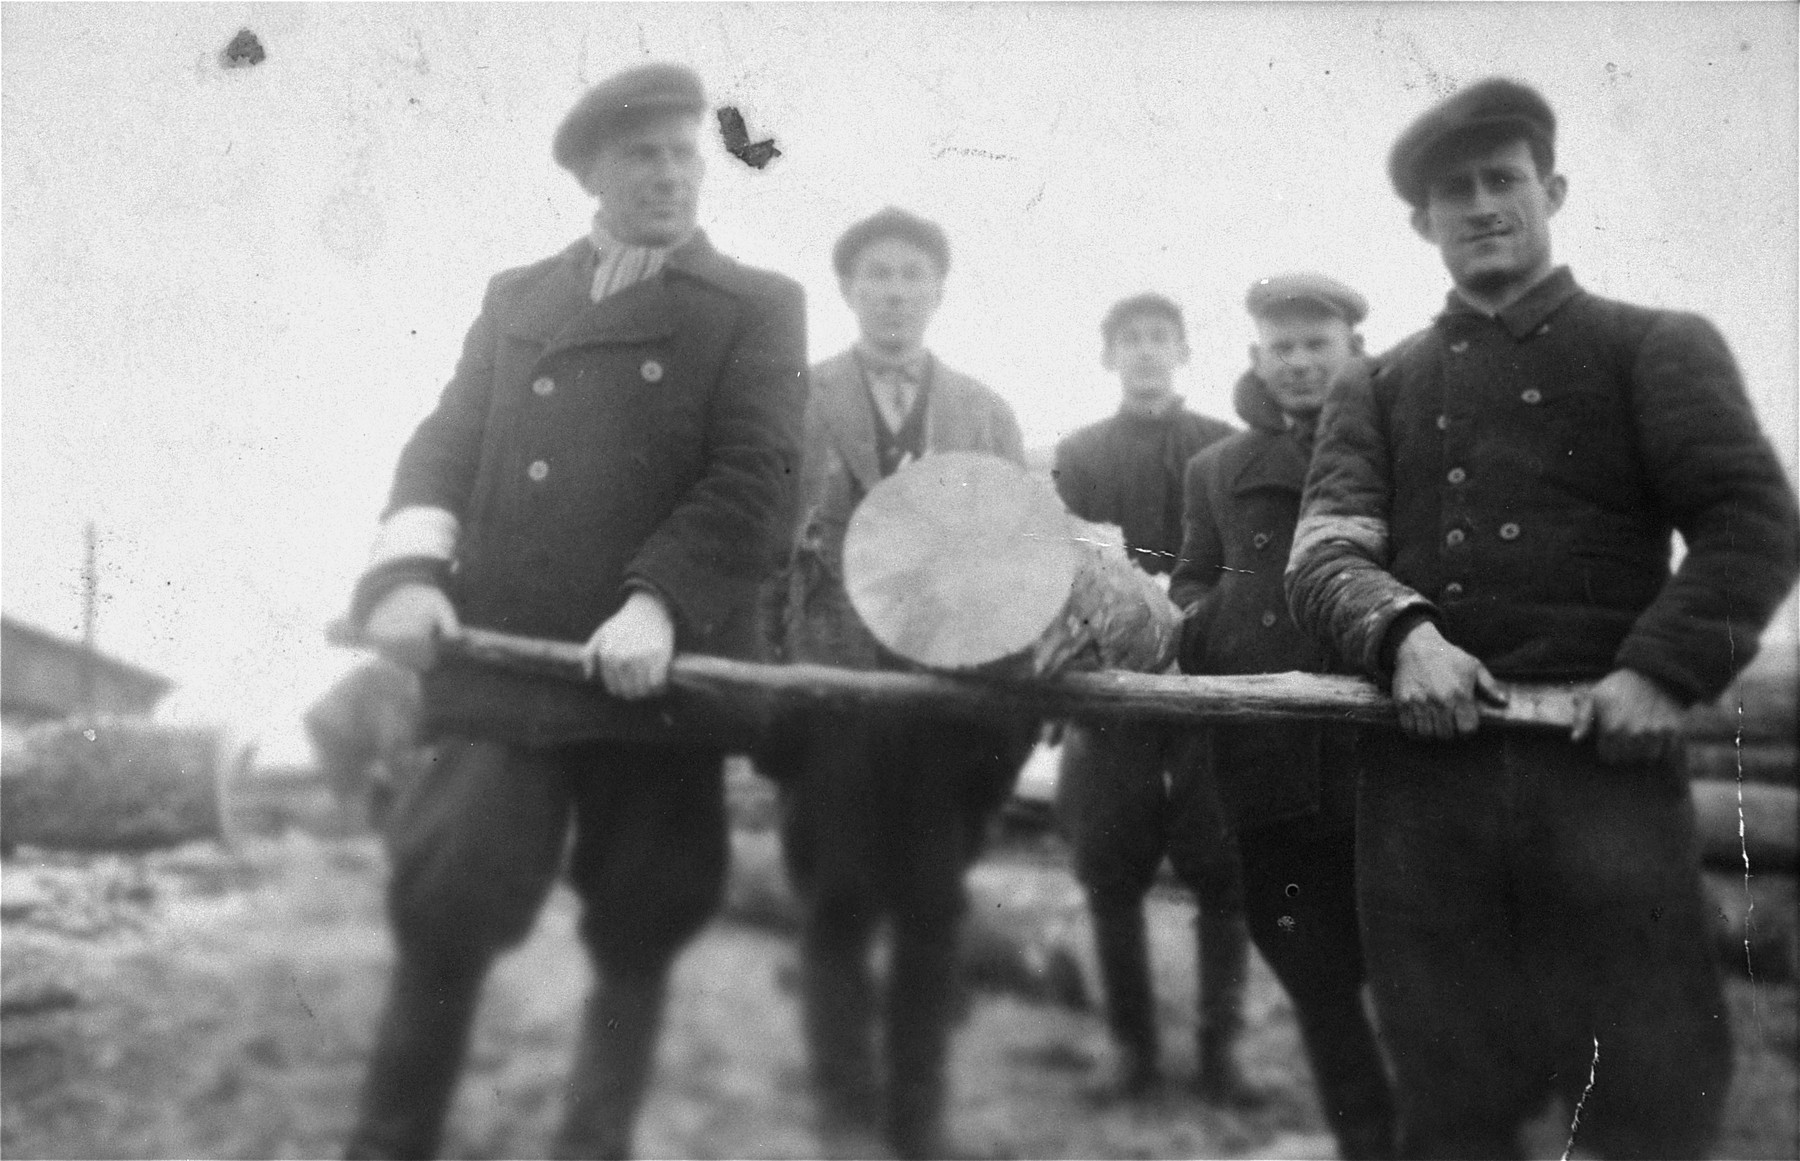 A group of young Jewish men carry a heavy log at a sawmill near the Wlodawa ghetto.  Among those pictured are Gedale Rajs, Isaac Rajs, Isaac Ejber and Jacob Rajs.